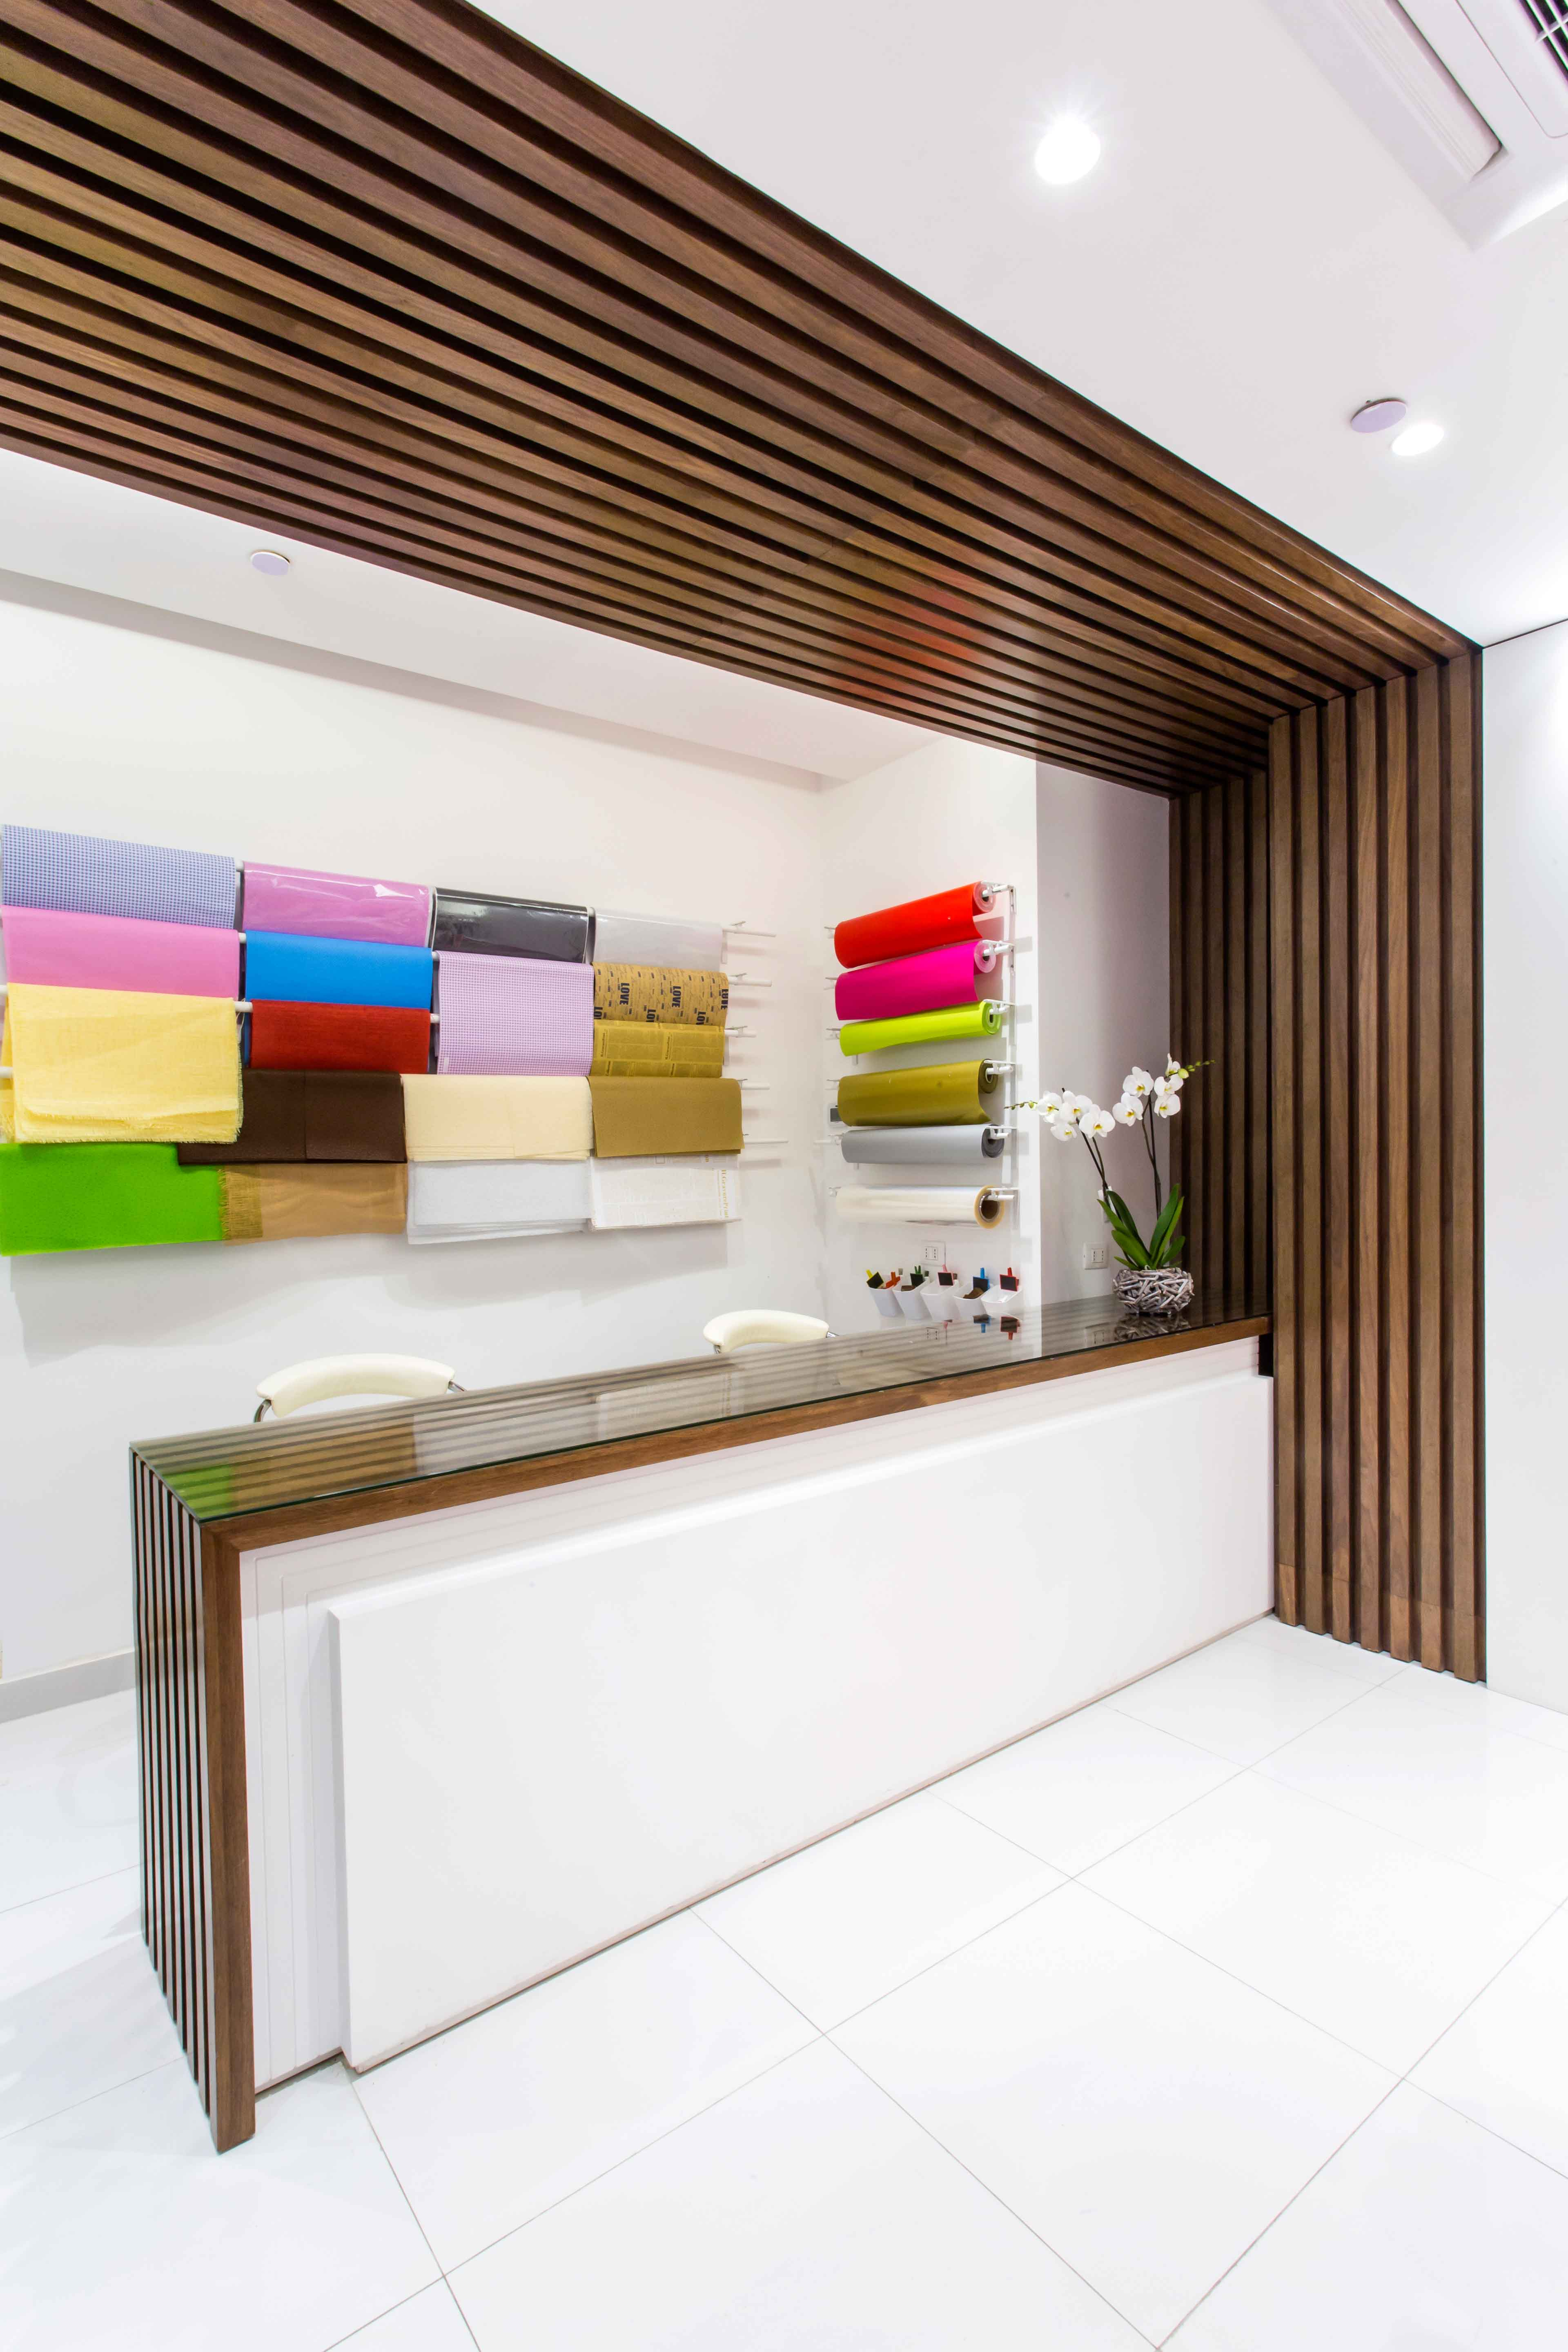 House Interior Designers In Amman